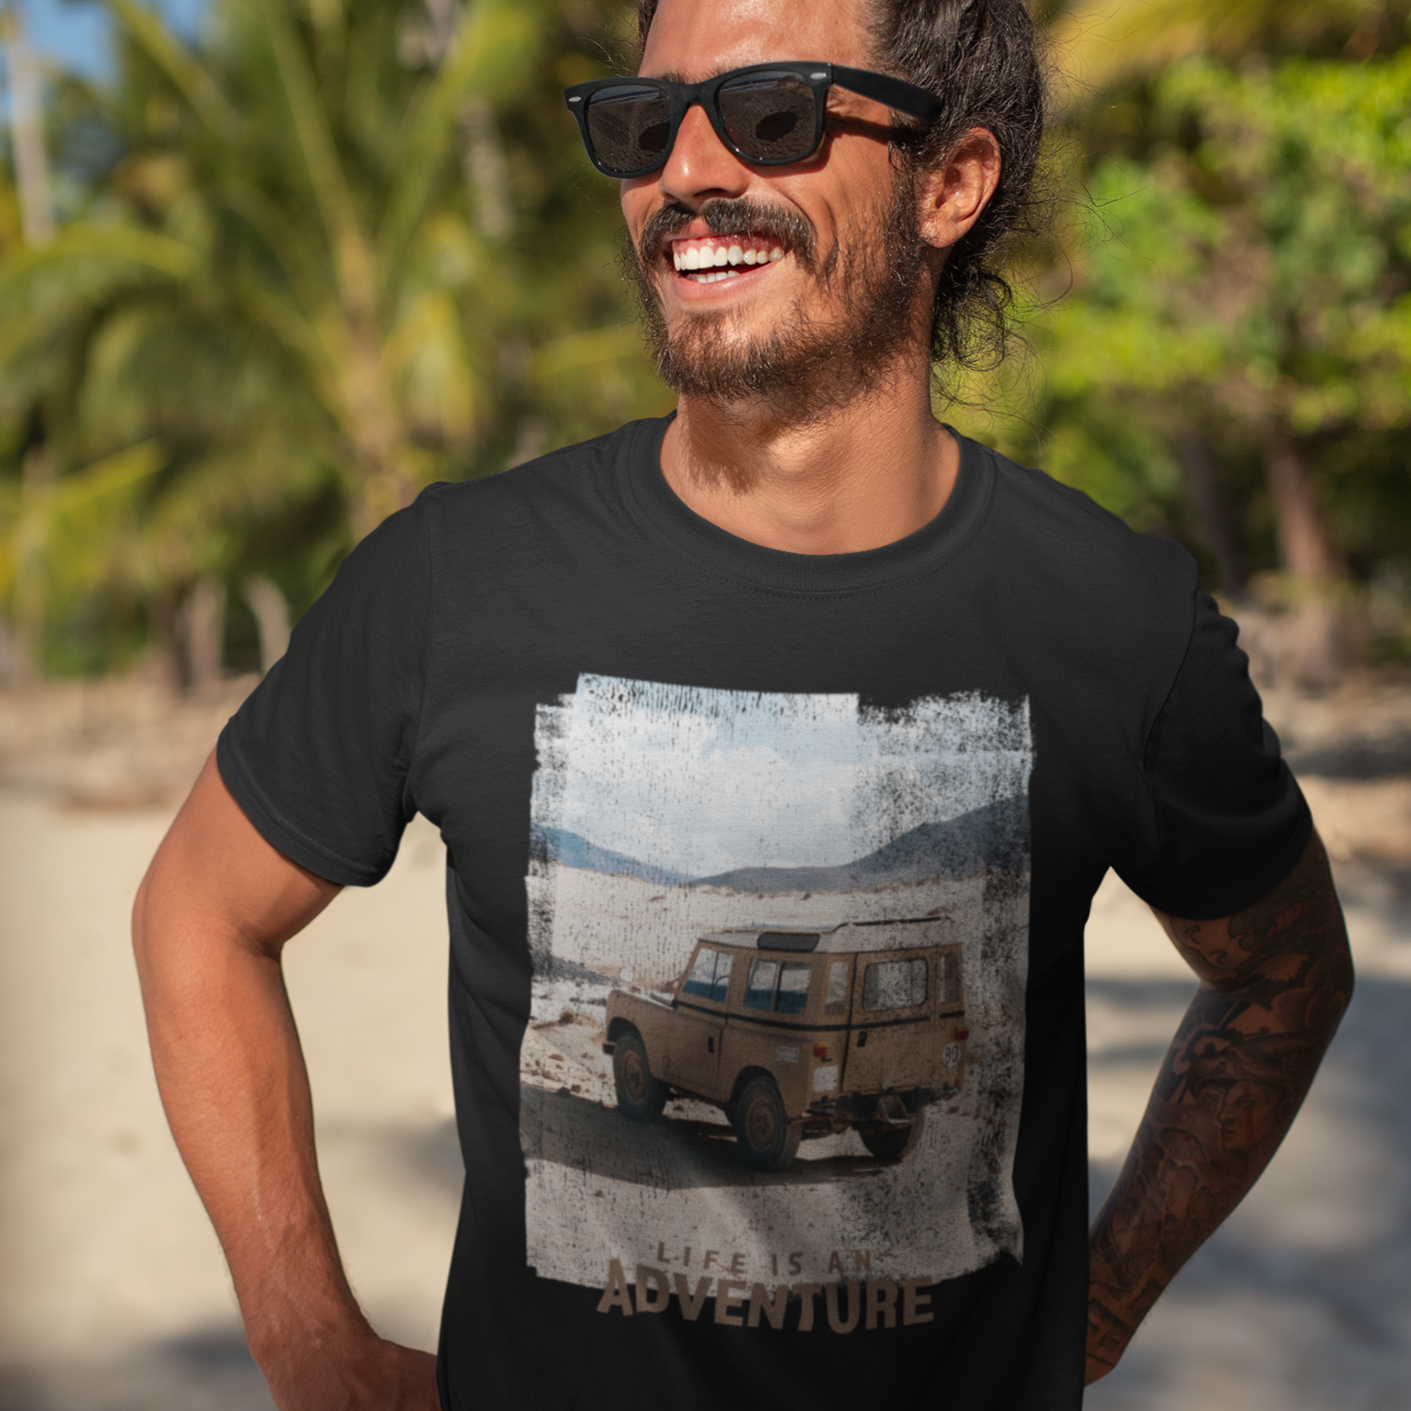 Life's an adventure Unisex T-Shirt